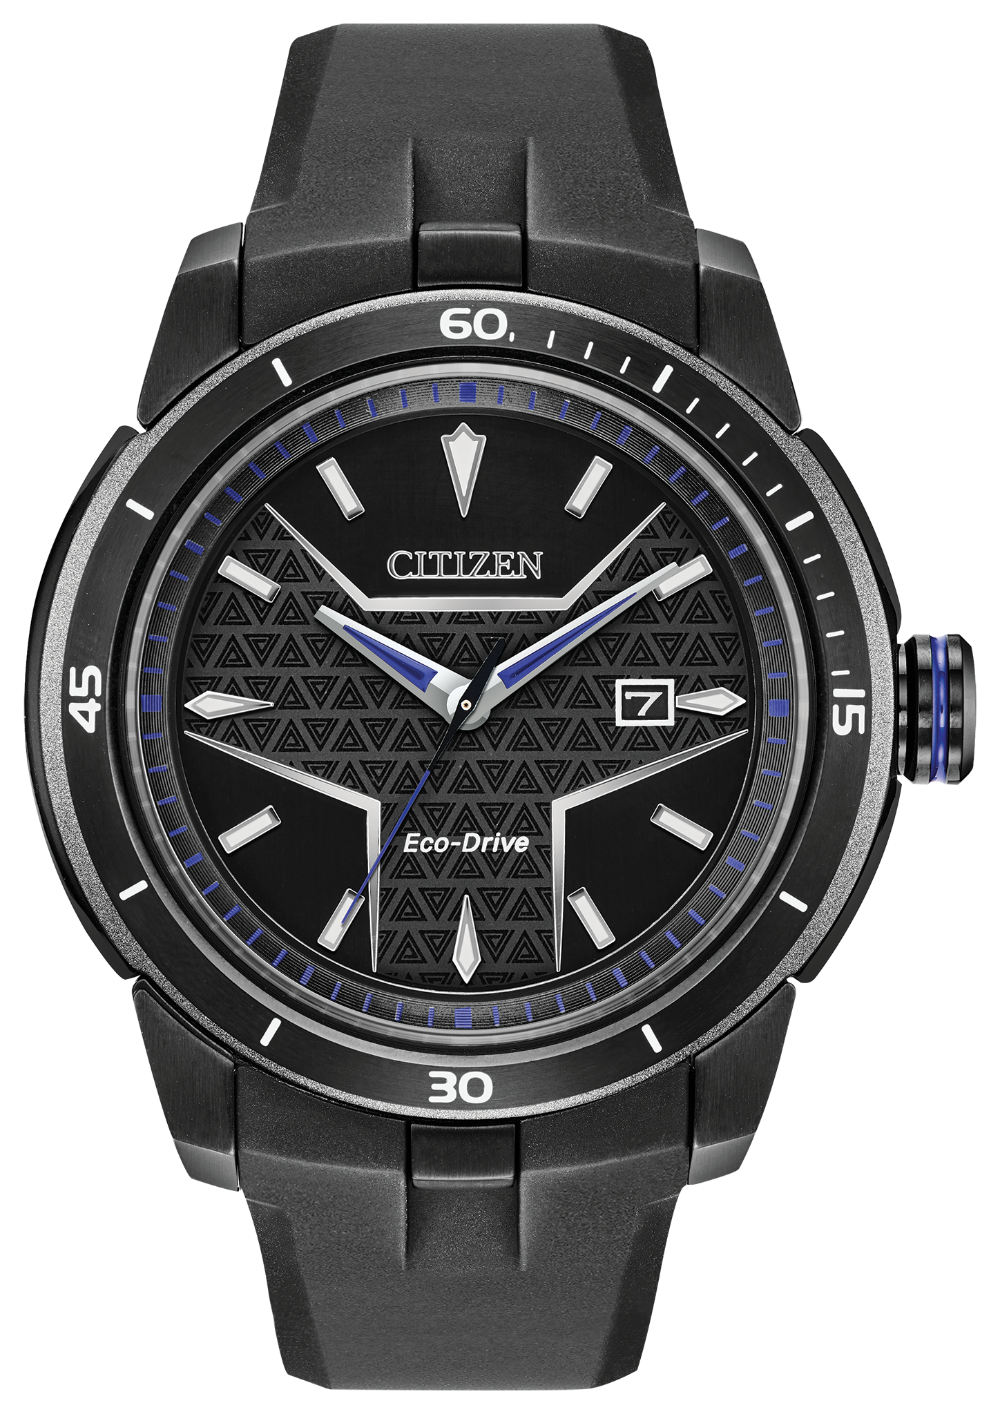 Marvel Black Panther timepiece by Citizen